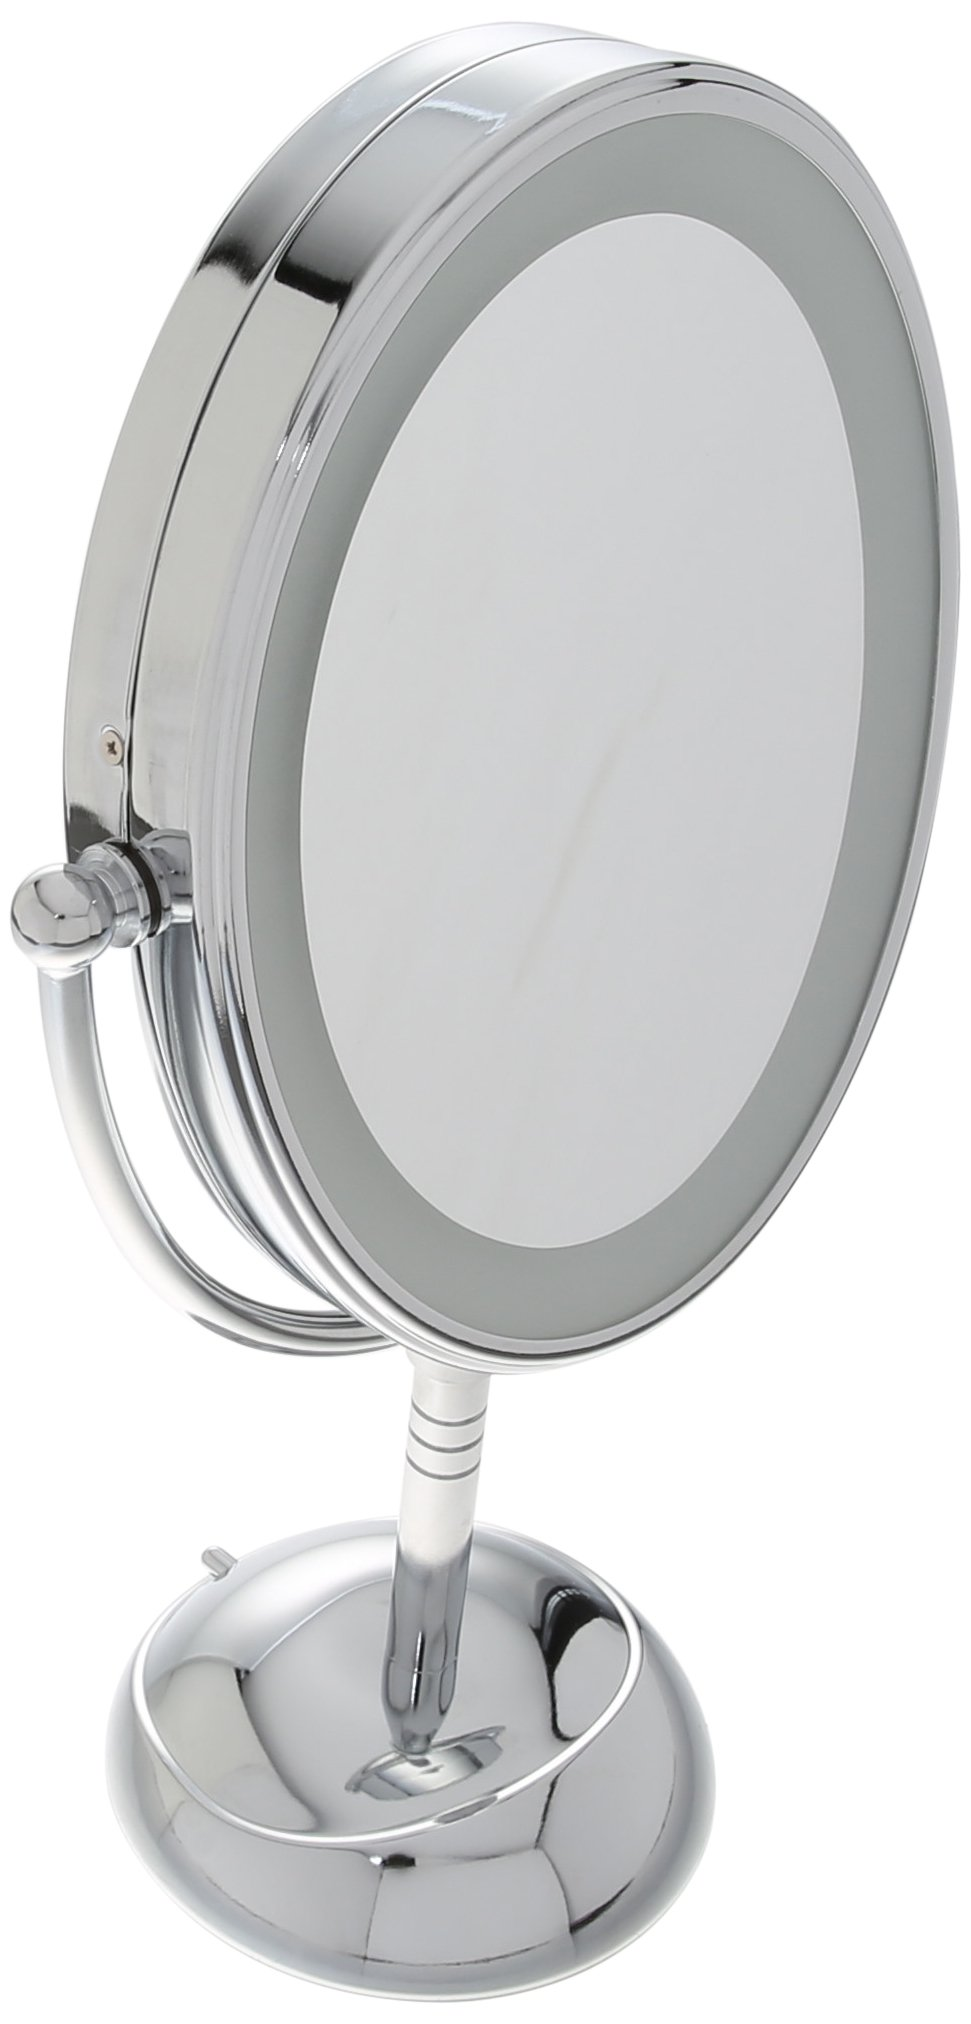 Conair Oval Shaped LED Double-Sided Lighted Makeup Mirror; 1x/7x magnification; Polished Chrome Finish by Conair (Image #4)